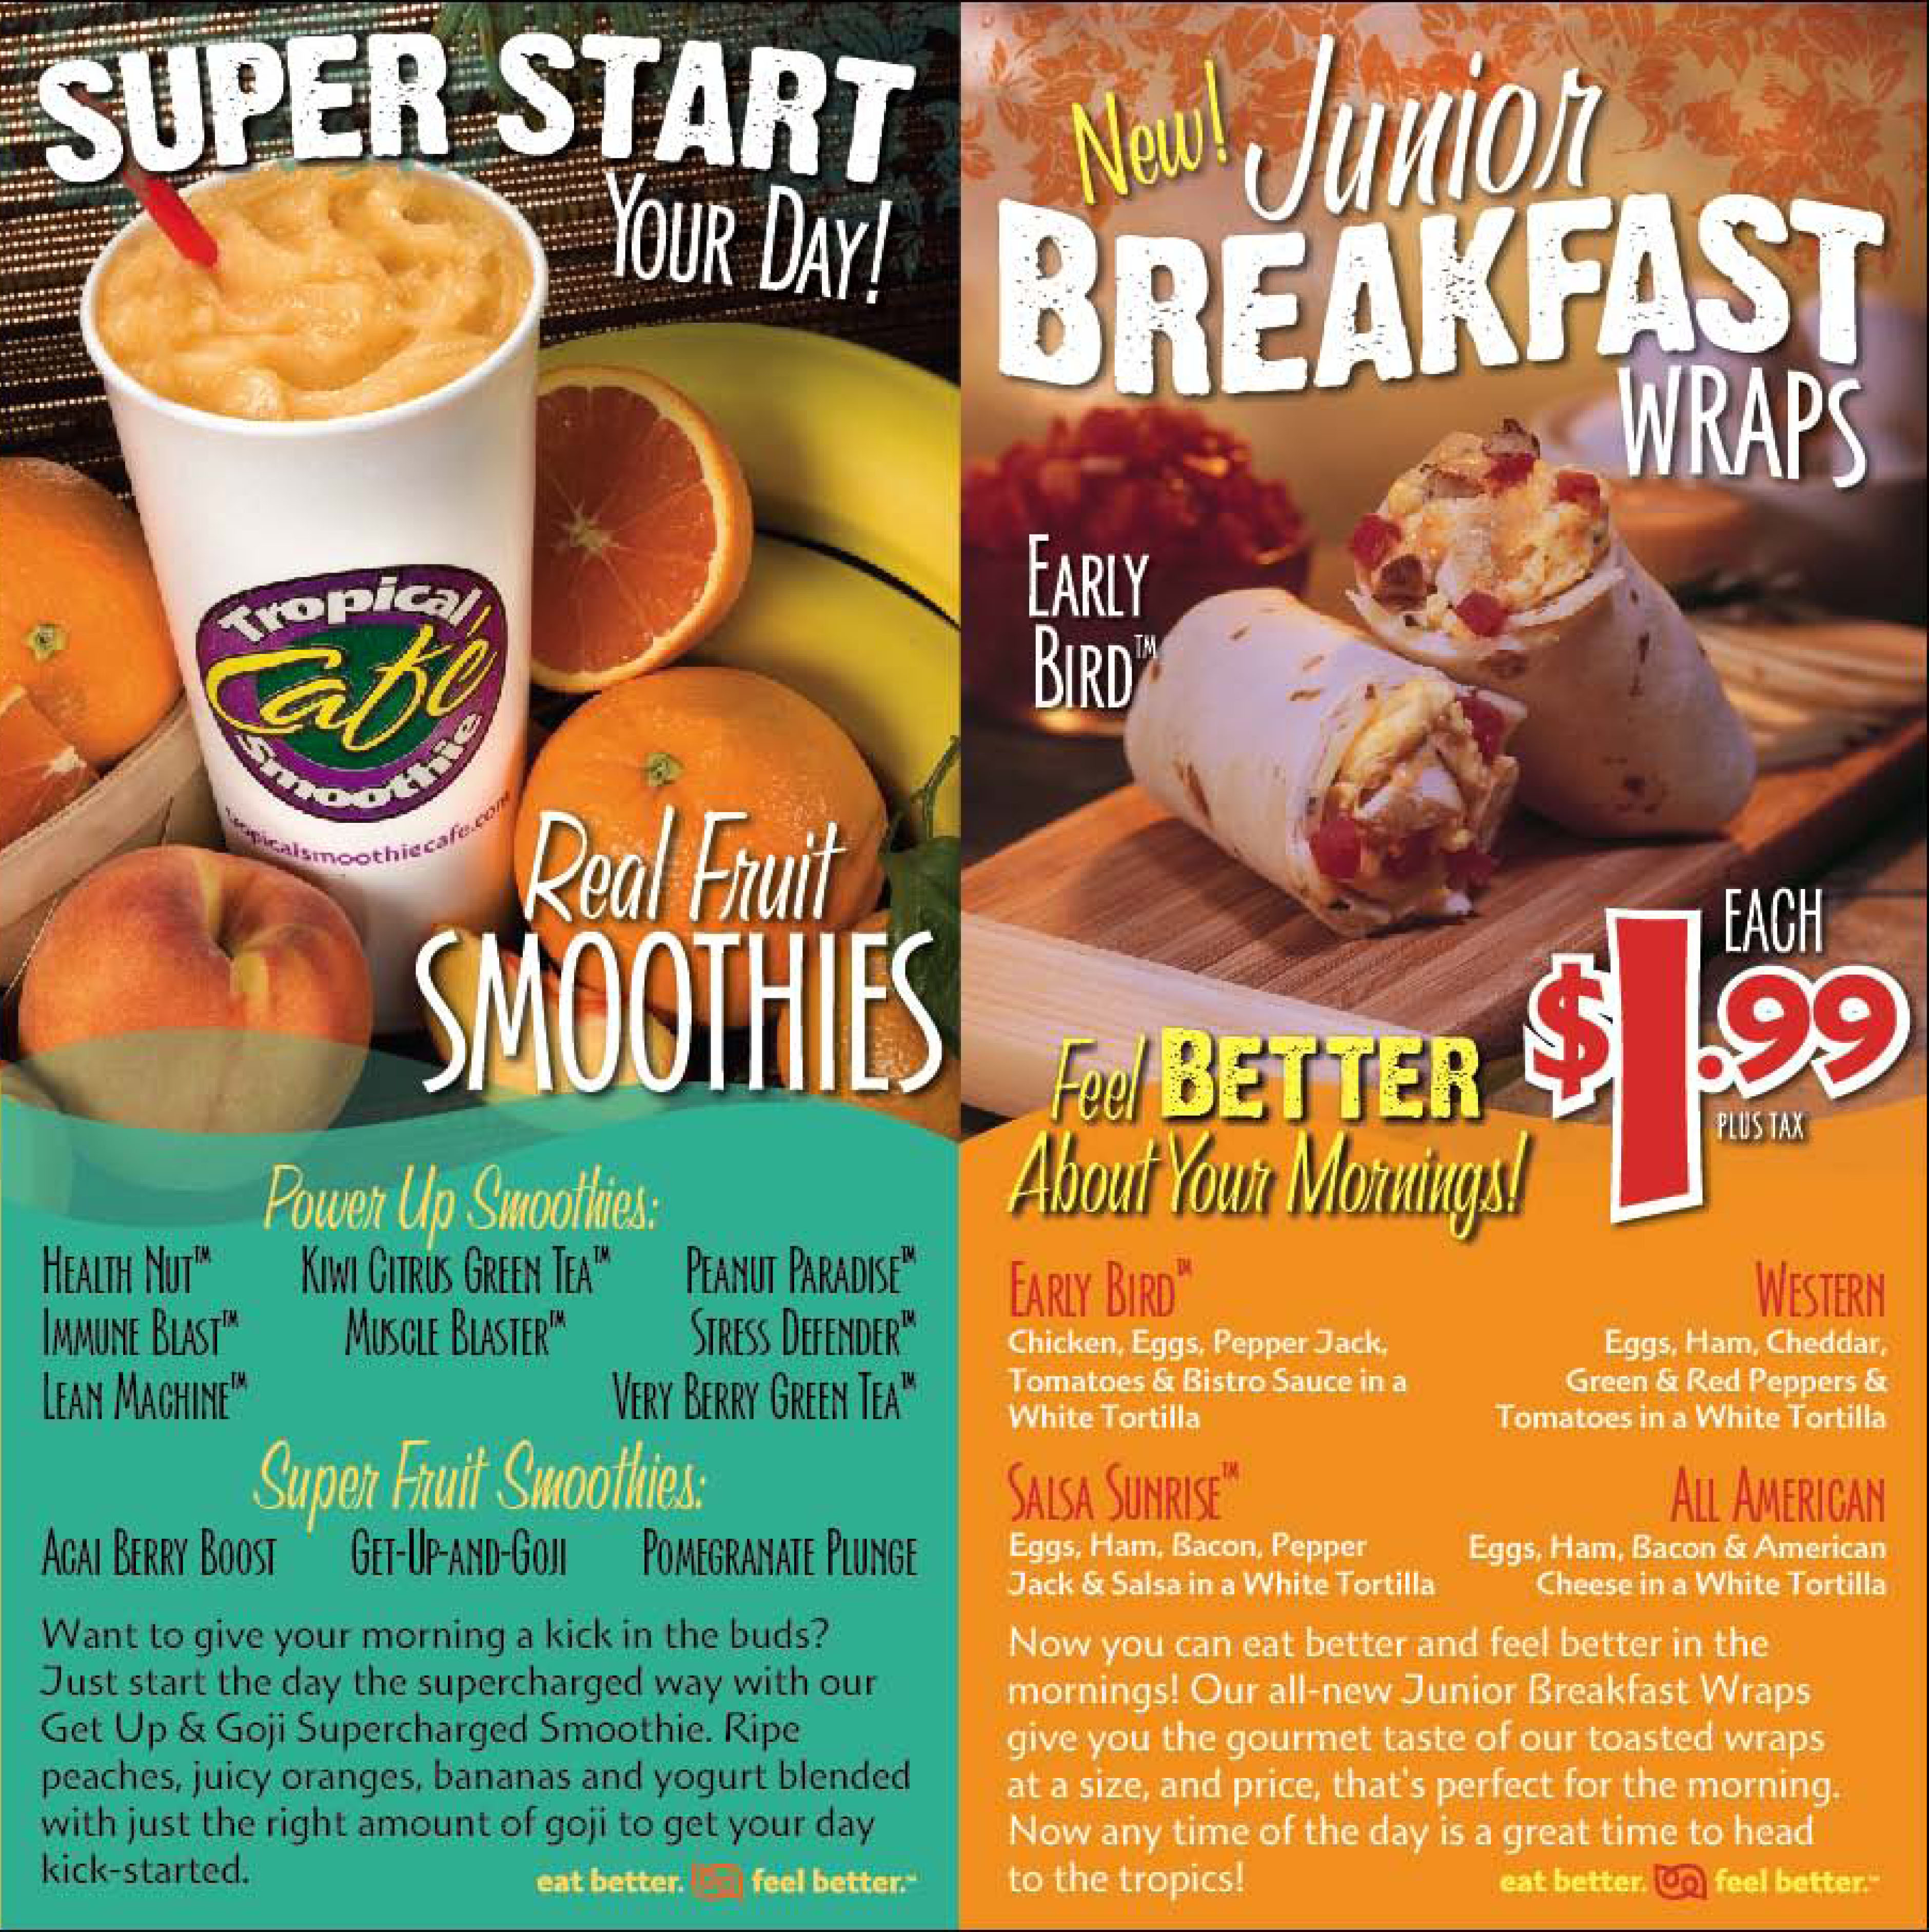 Tropical Smoothie Breakfast Specials